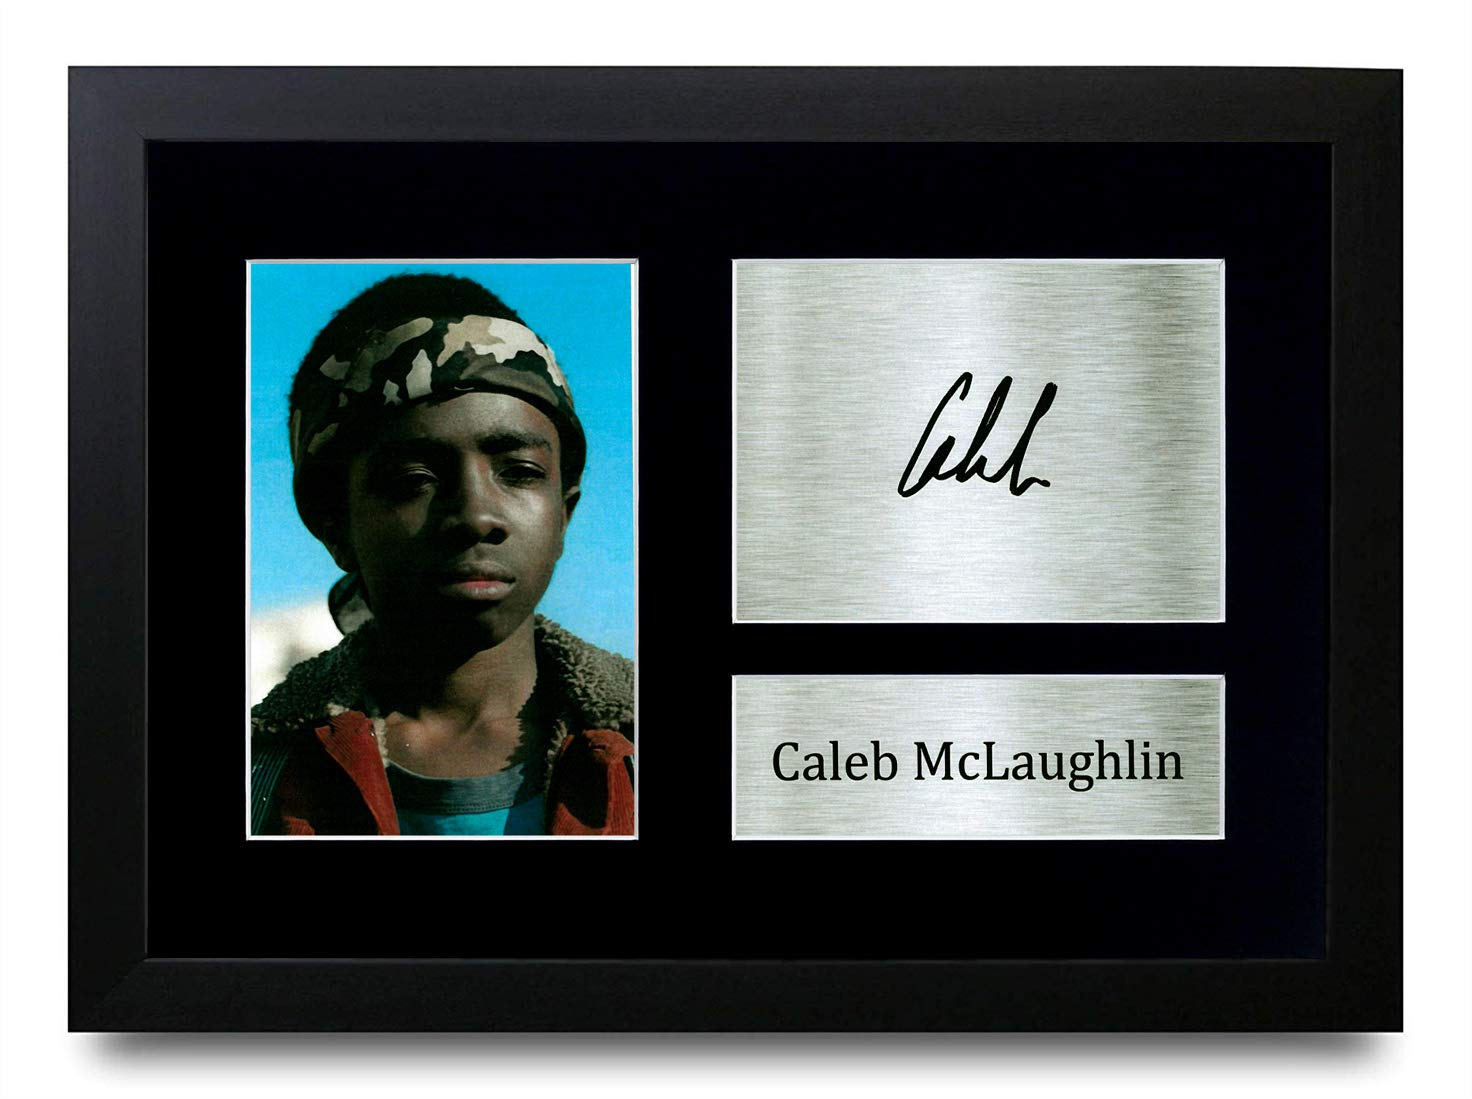 A4 Framed HWC Trading Caleb McLaughlin Stranger things Lucas Sinclair Gifts Printed Signed Autograph Picture for TV Memorabilia Fans